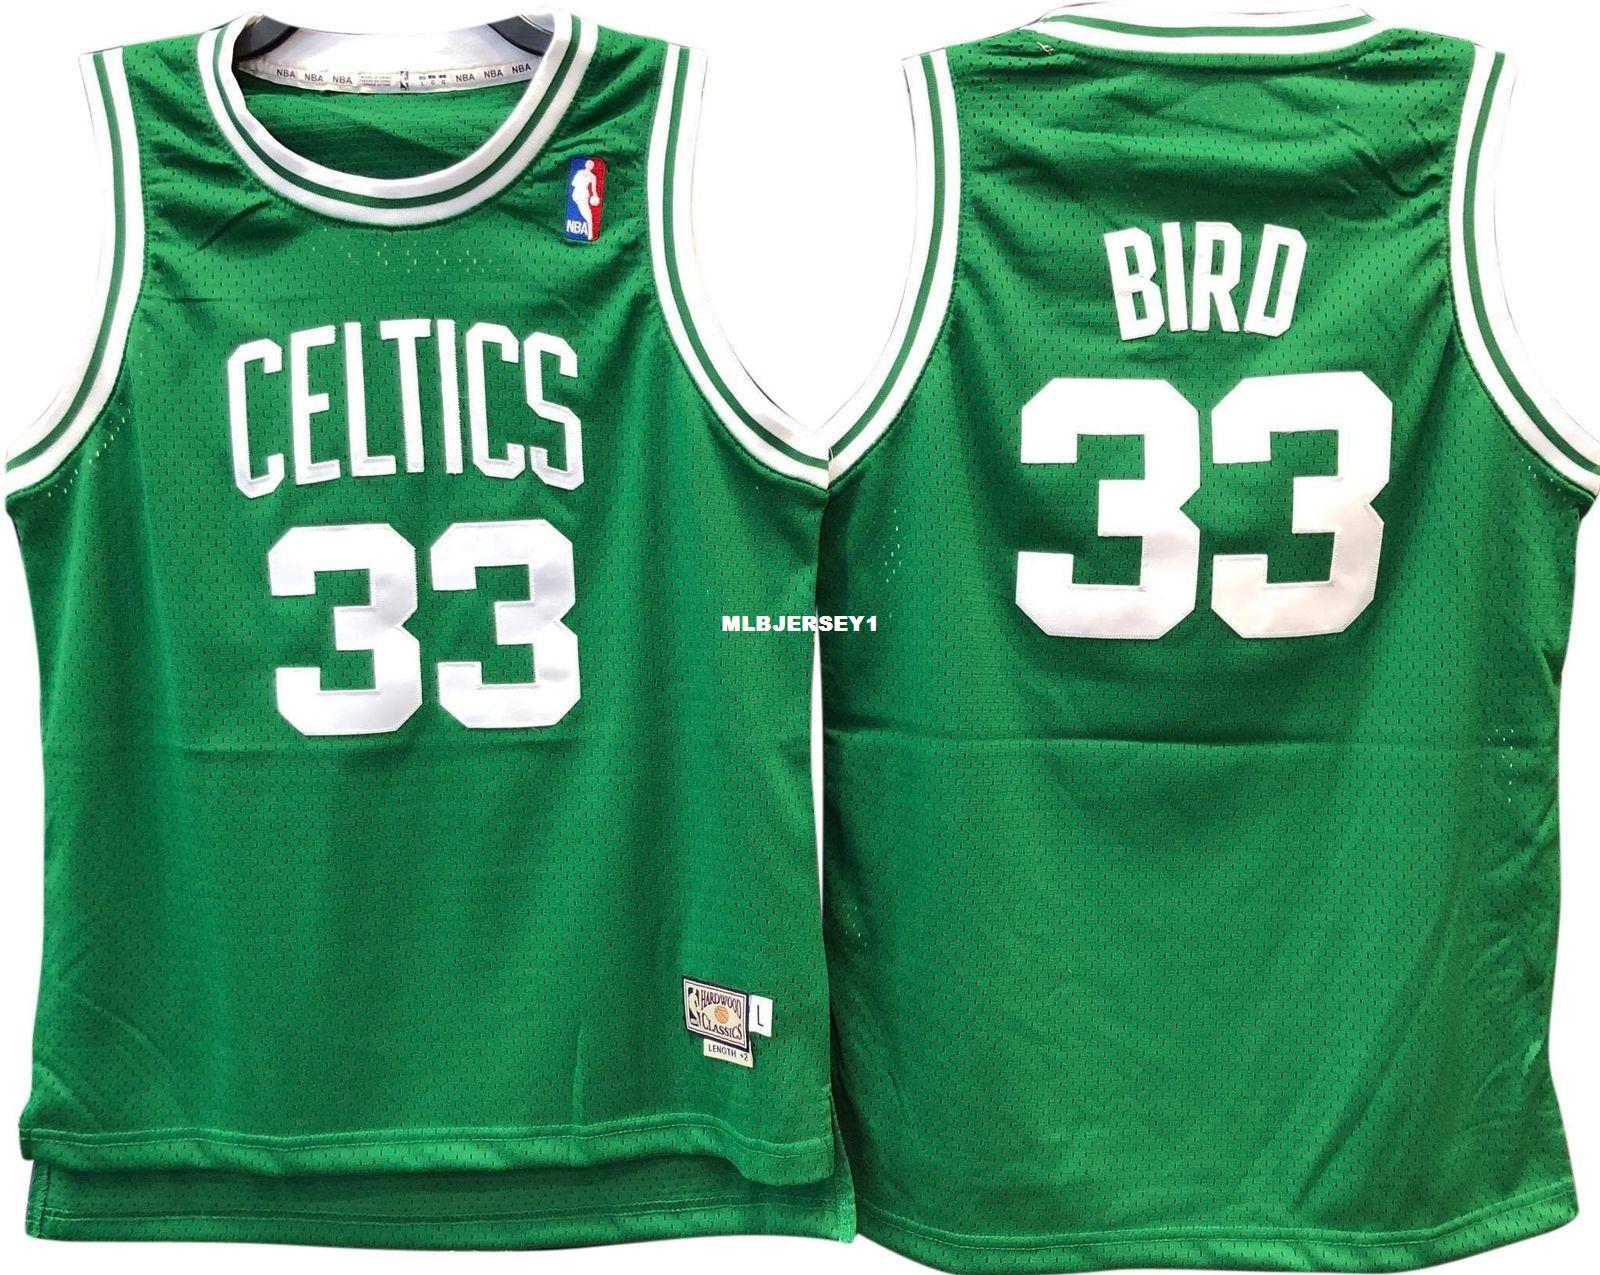 the best attitude dba74 f55ed LARRY BIRD #33 Green Sewn high quality Retro Vintage Top JERSEY Mens Vest  Size XS-6XL Stitched basketball Jerseys Ncaa